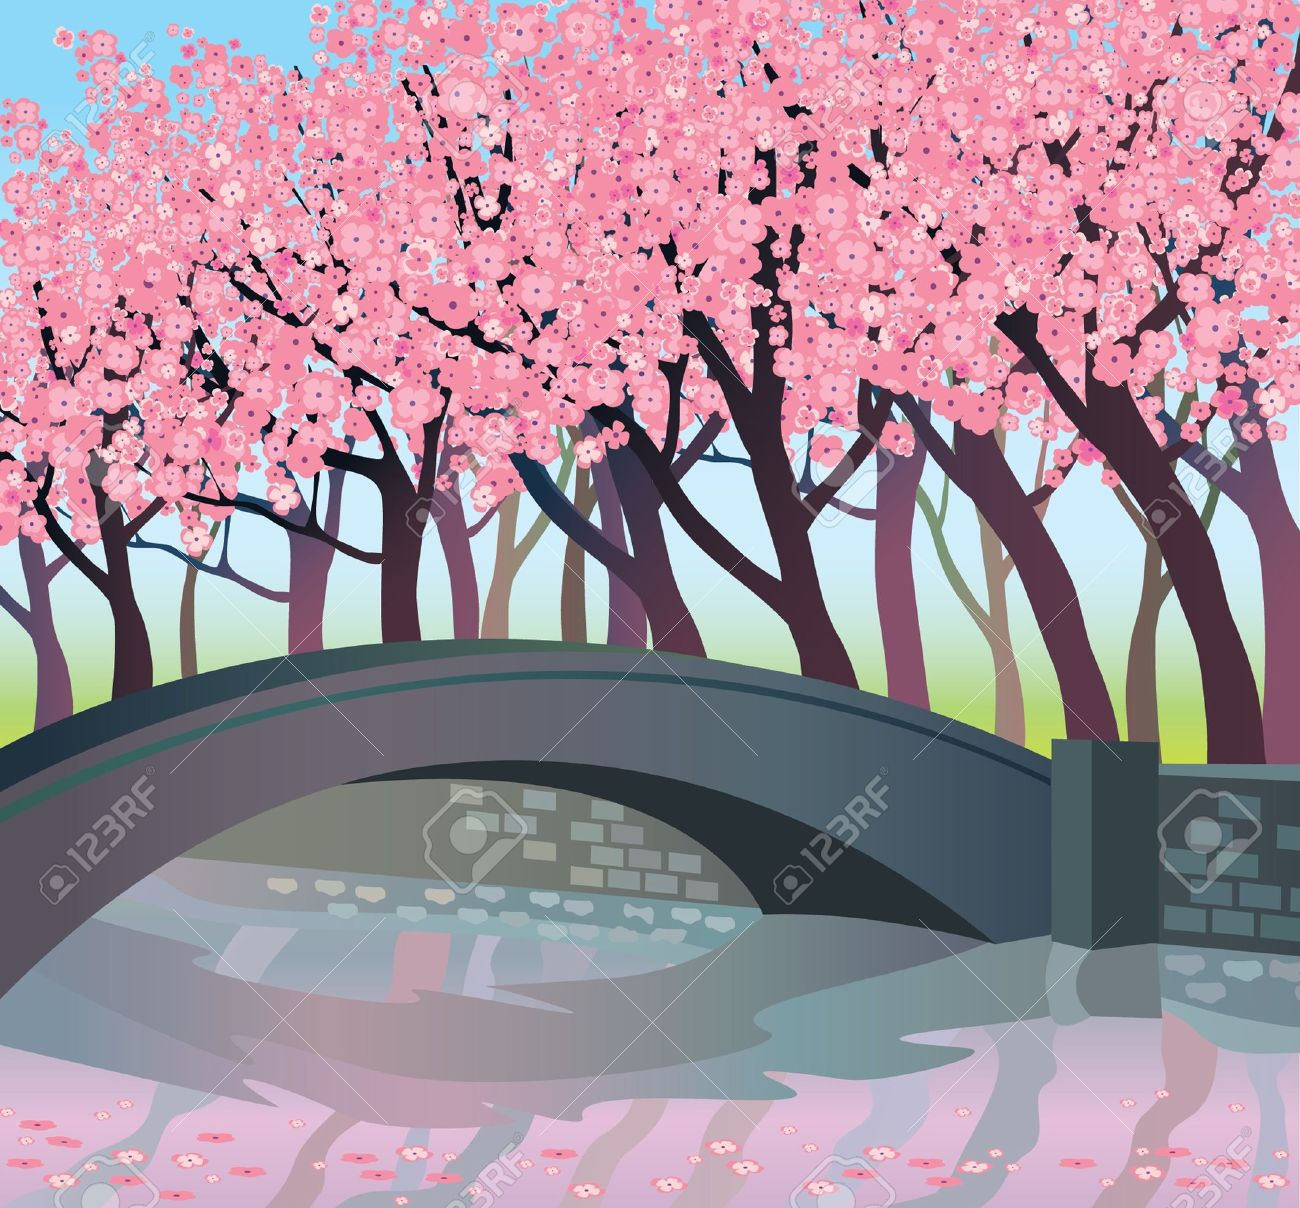 Landscape With Pink Japanese Trees And Bridge Royalty Free Cliparts